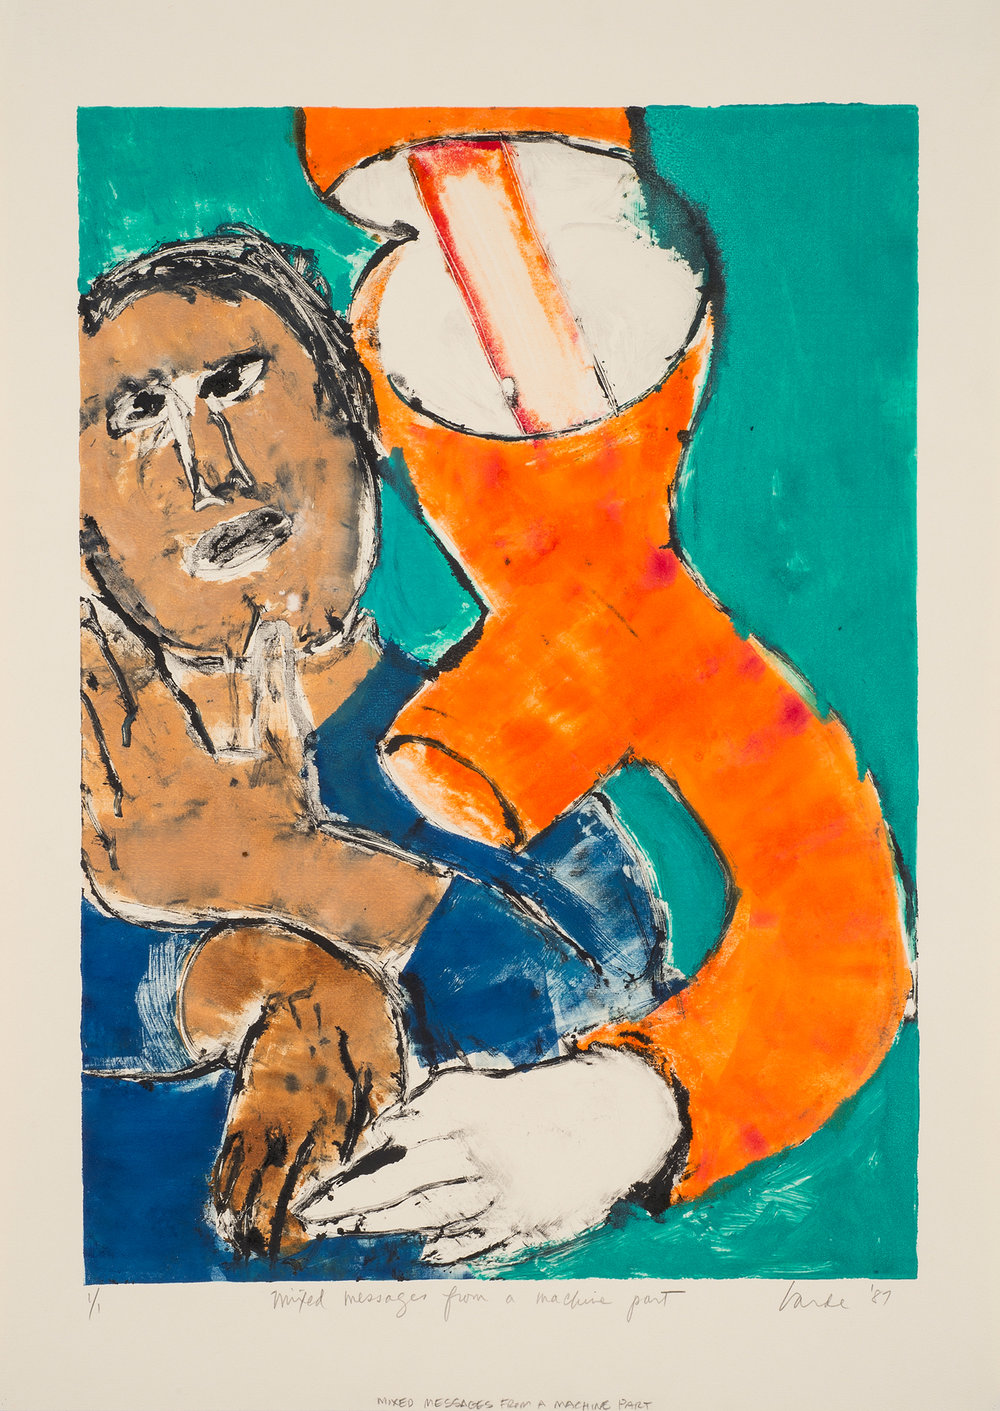 Mixed Messages From a Machine Part, 1987. Monotype on paper, 28 x 20 in. (71 x 51cm.)